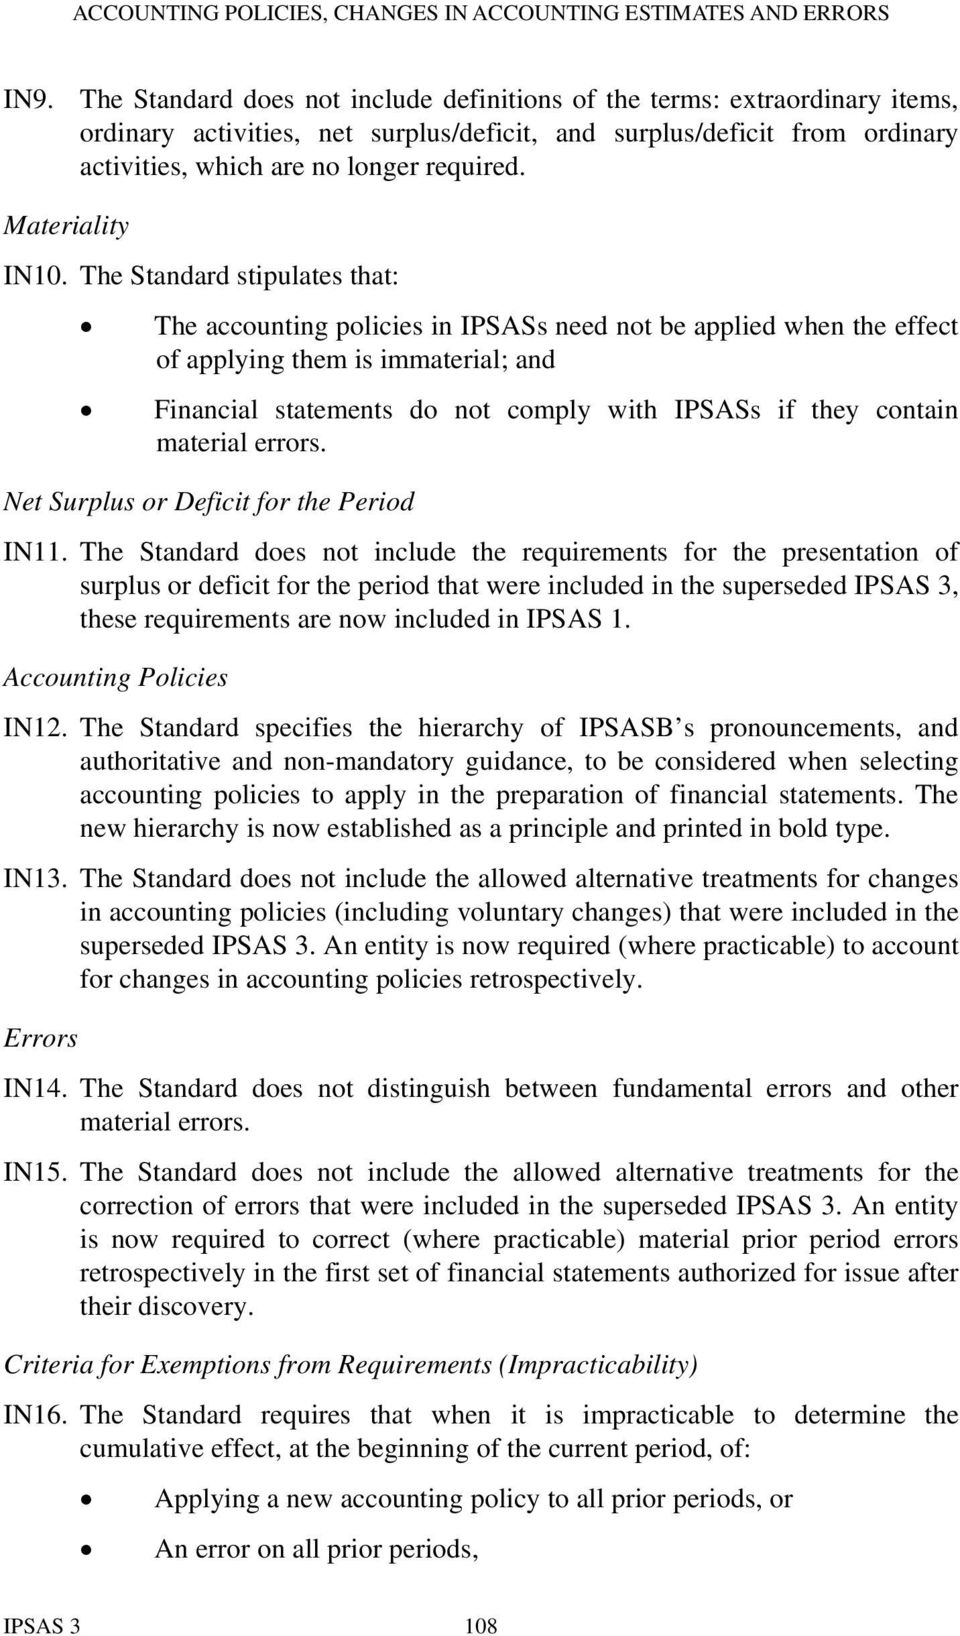 The Standard stipulates that: The accounting policies in IPSASs need not be applied when the effect of applying them is immaterial; and Financial statements do not comply with IPSASs if they contain